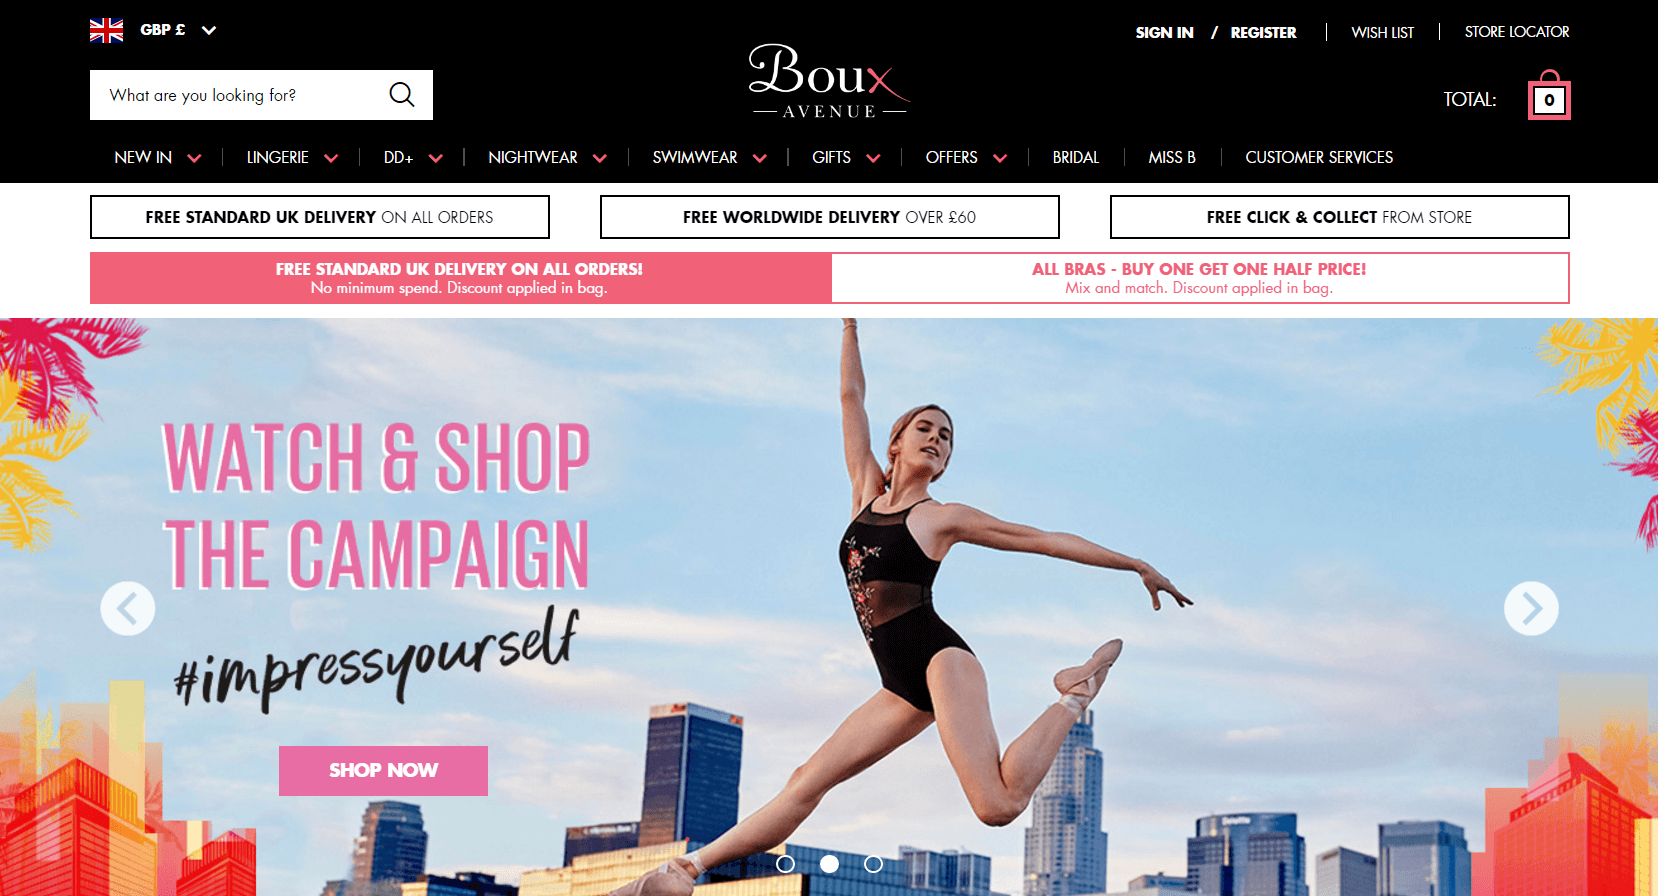 Nov 22,  · Boux Avenue is a premium underwear, nightwear and lingerie brand based in the UK. Ideal for everyday wear as well as those extra special occasions like an anniversary when you want sexy, stylish lingerie, Boux Avenue aims to offer beautiful styles that fit perfectly.